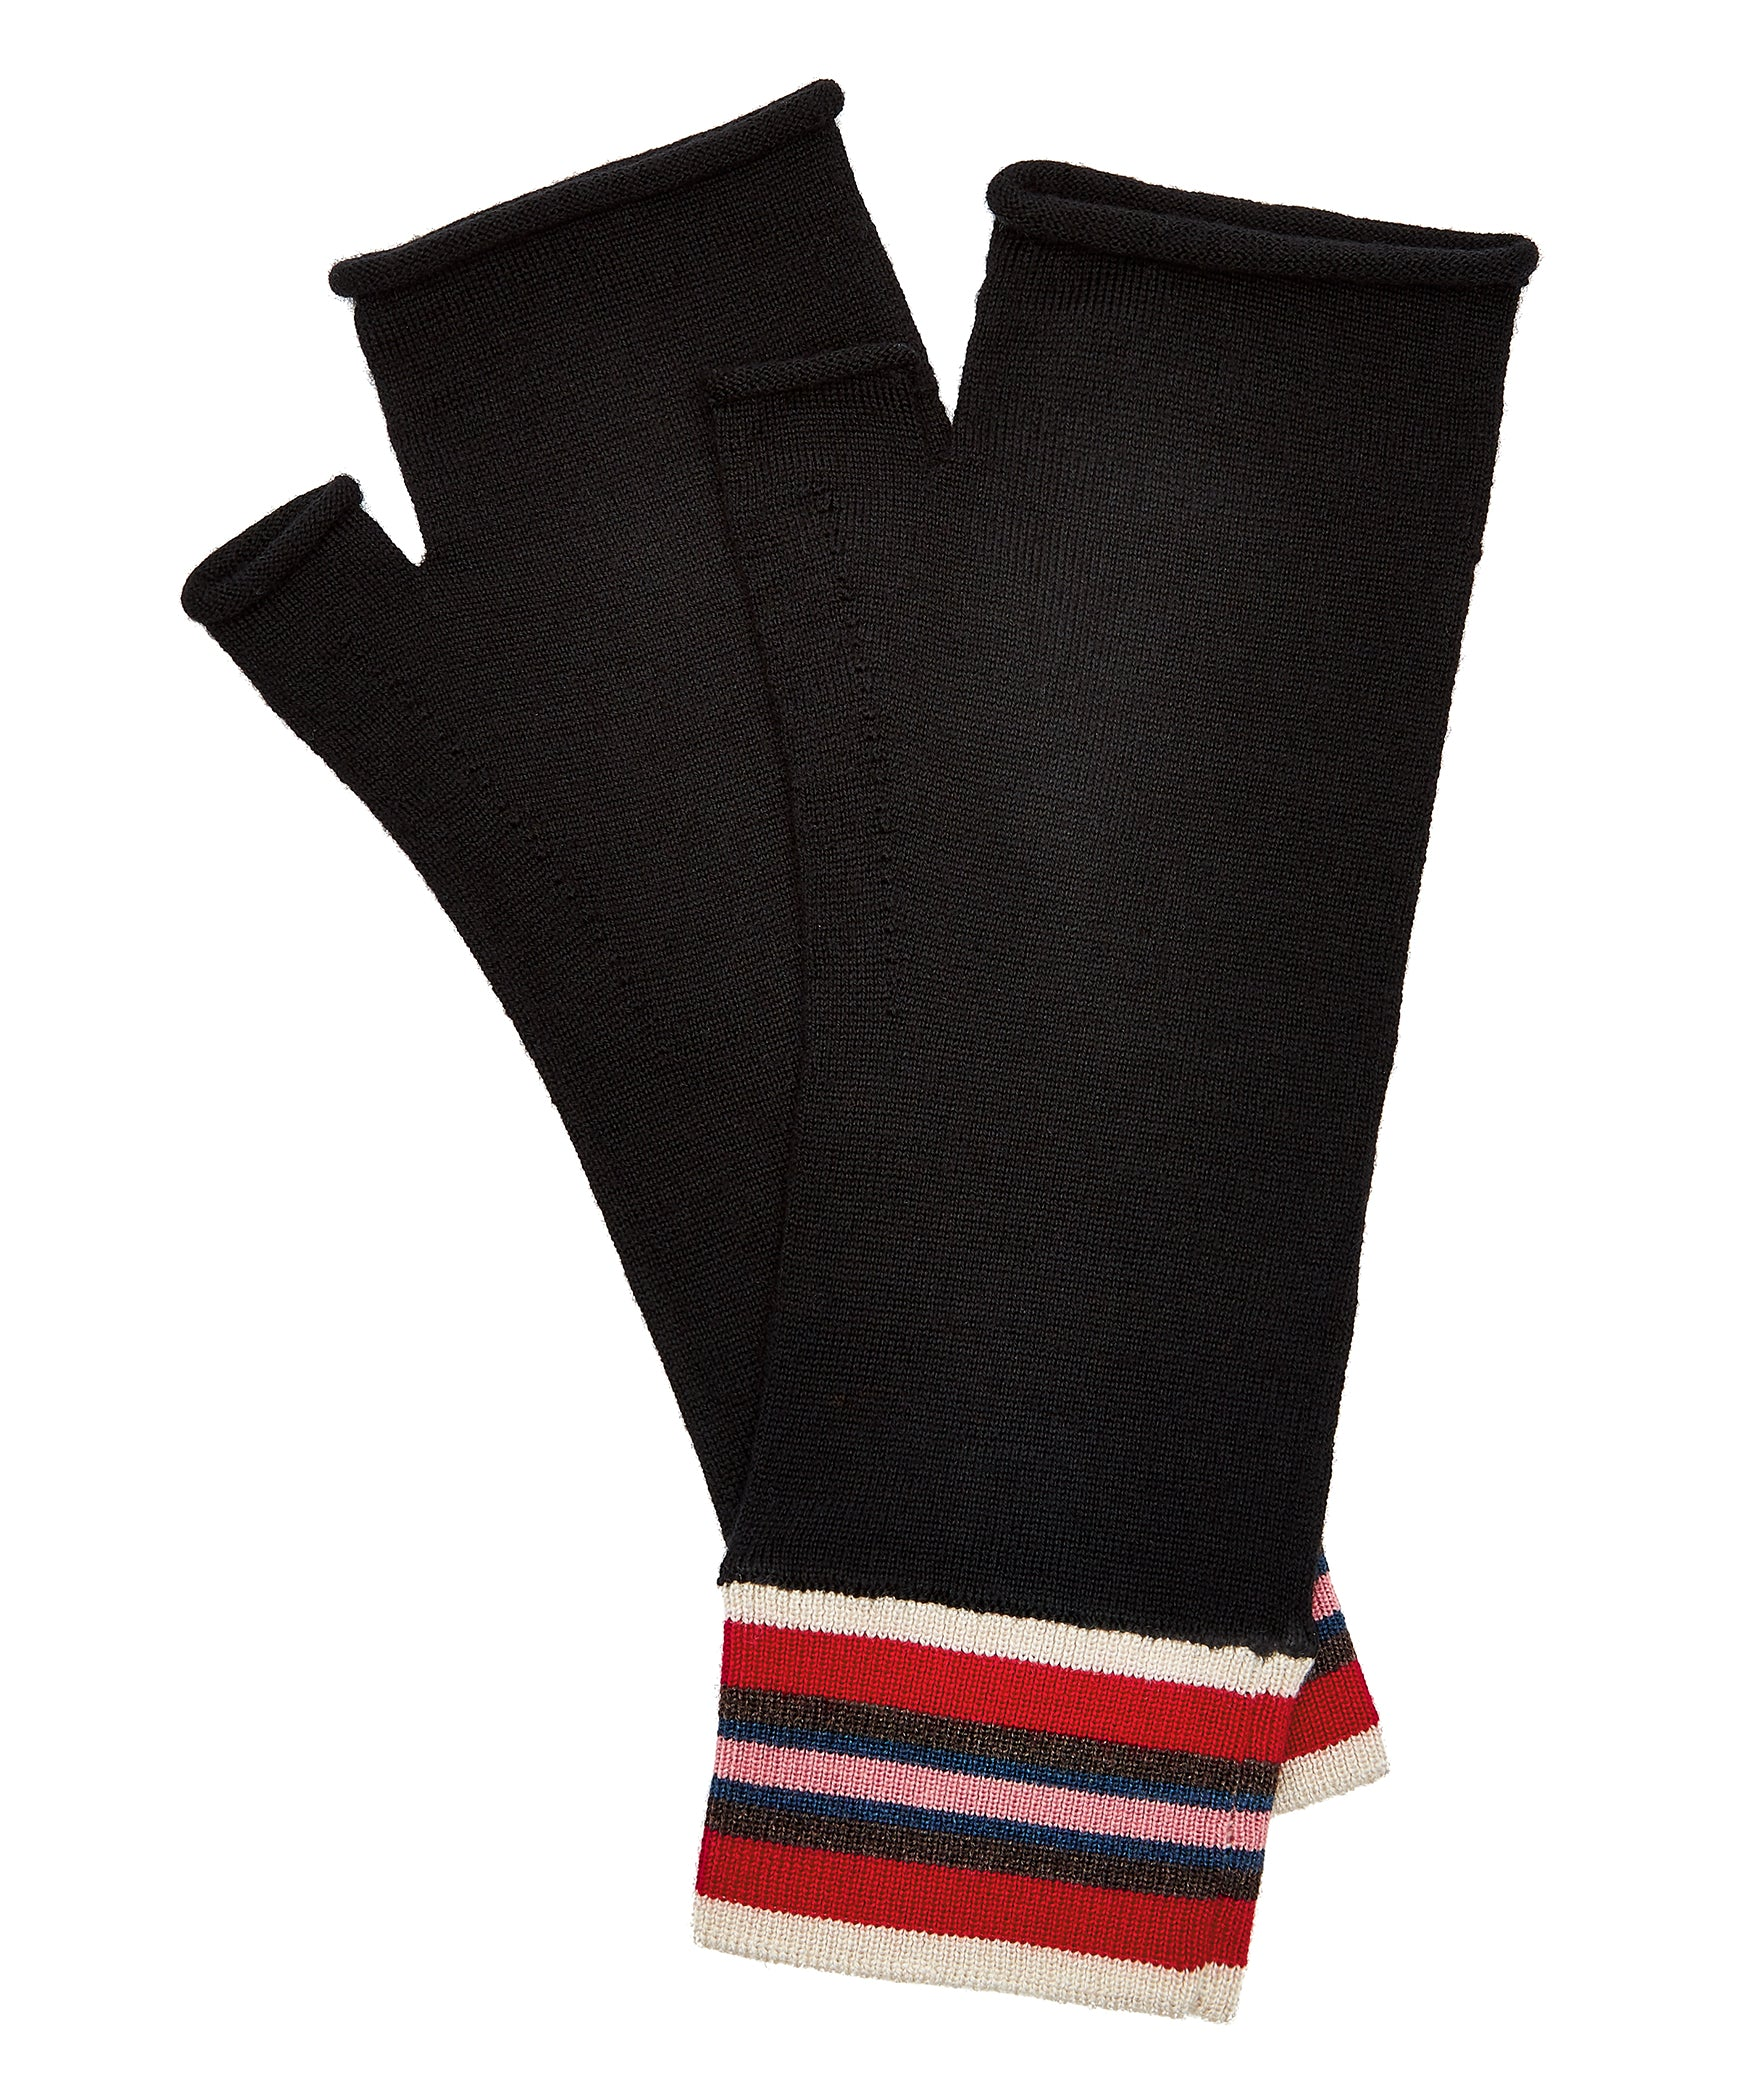 Black Extrafine Merino Fingerless Gloves